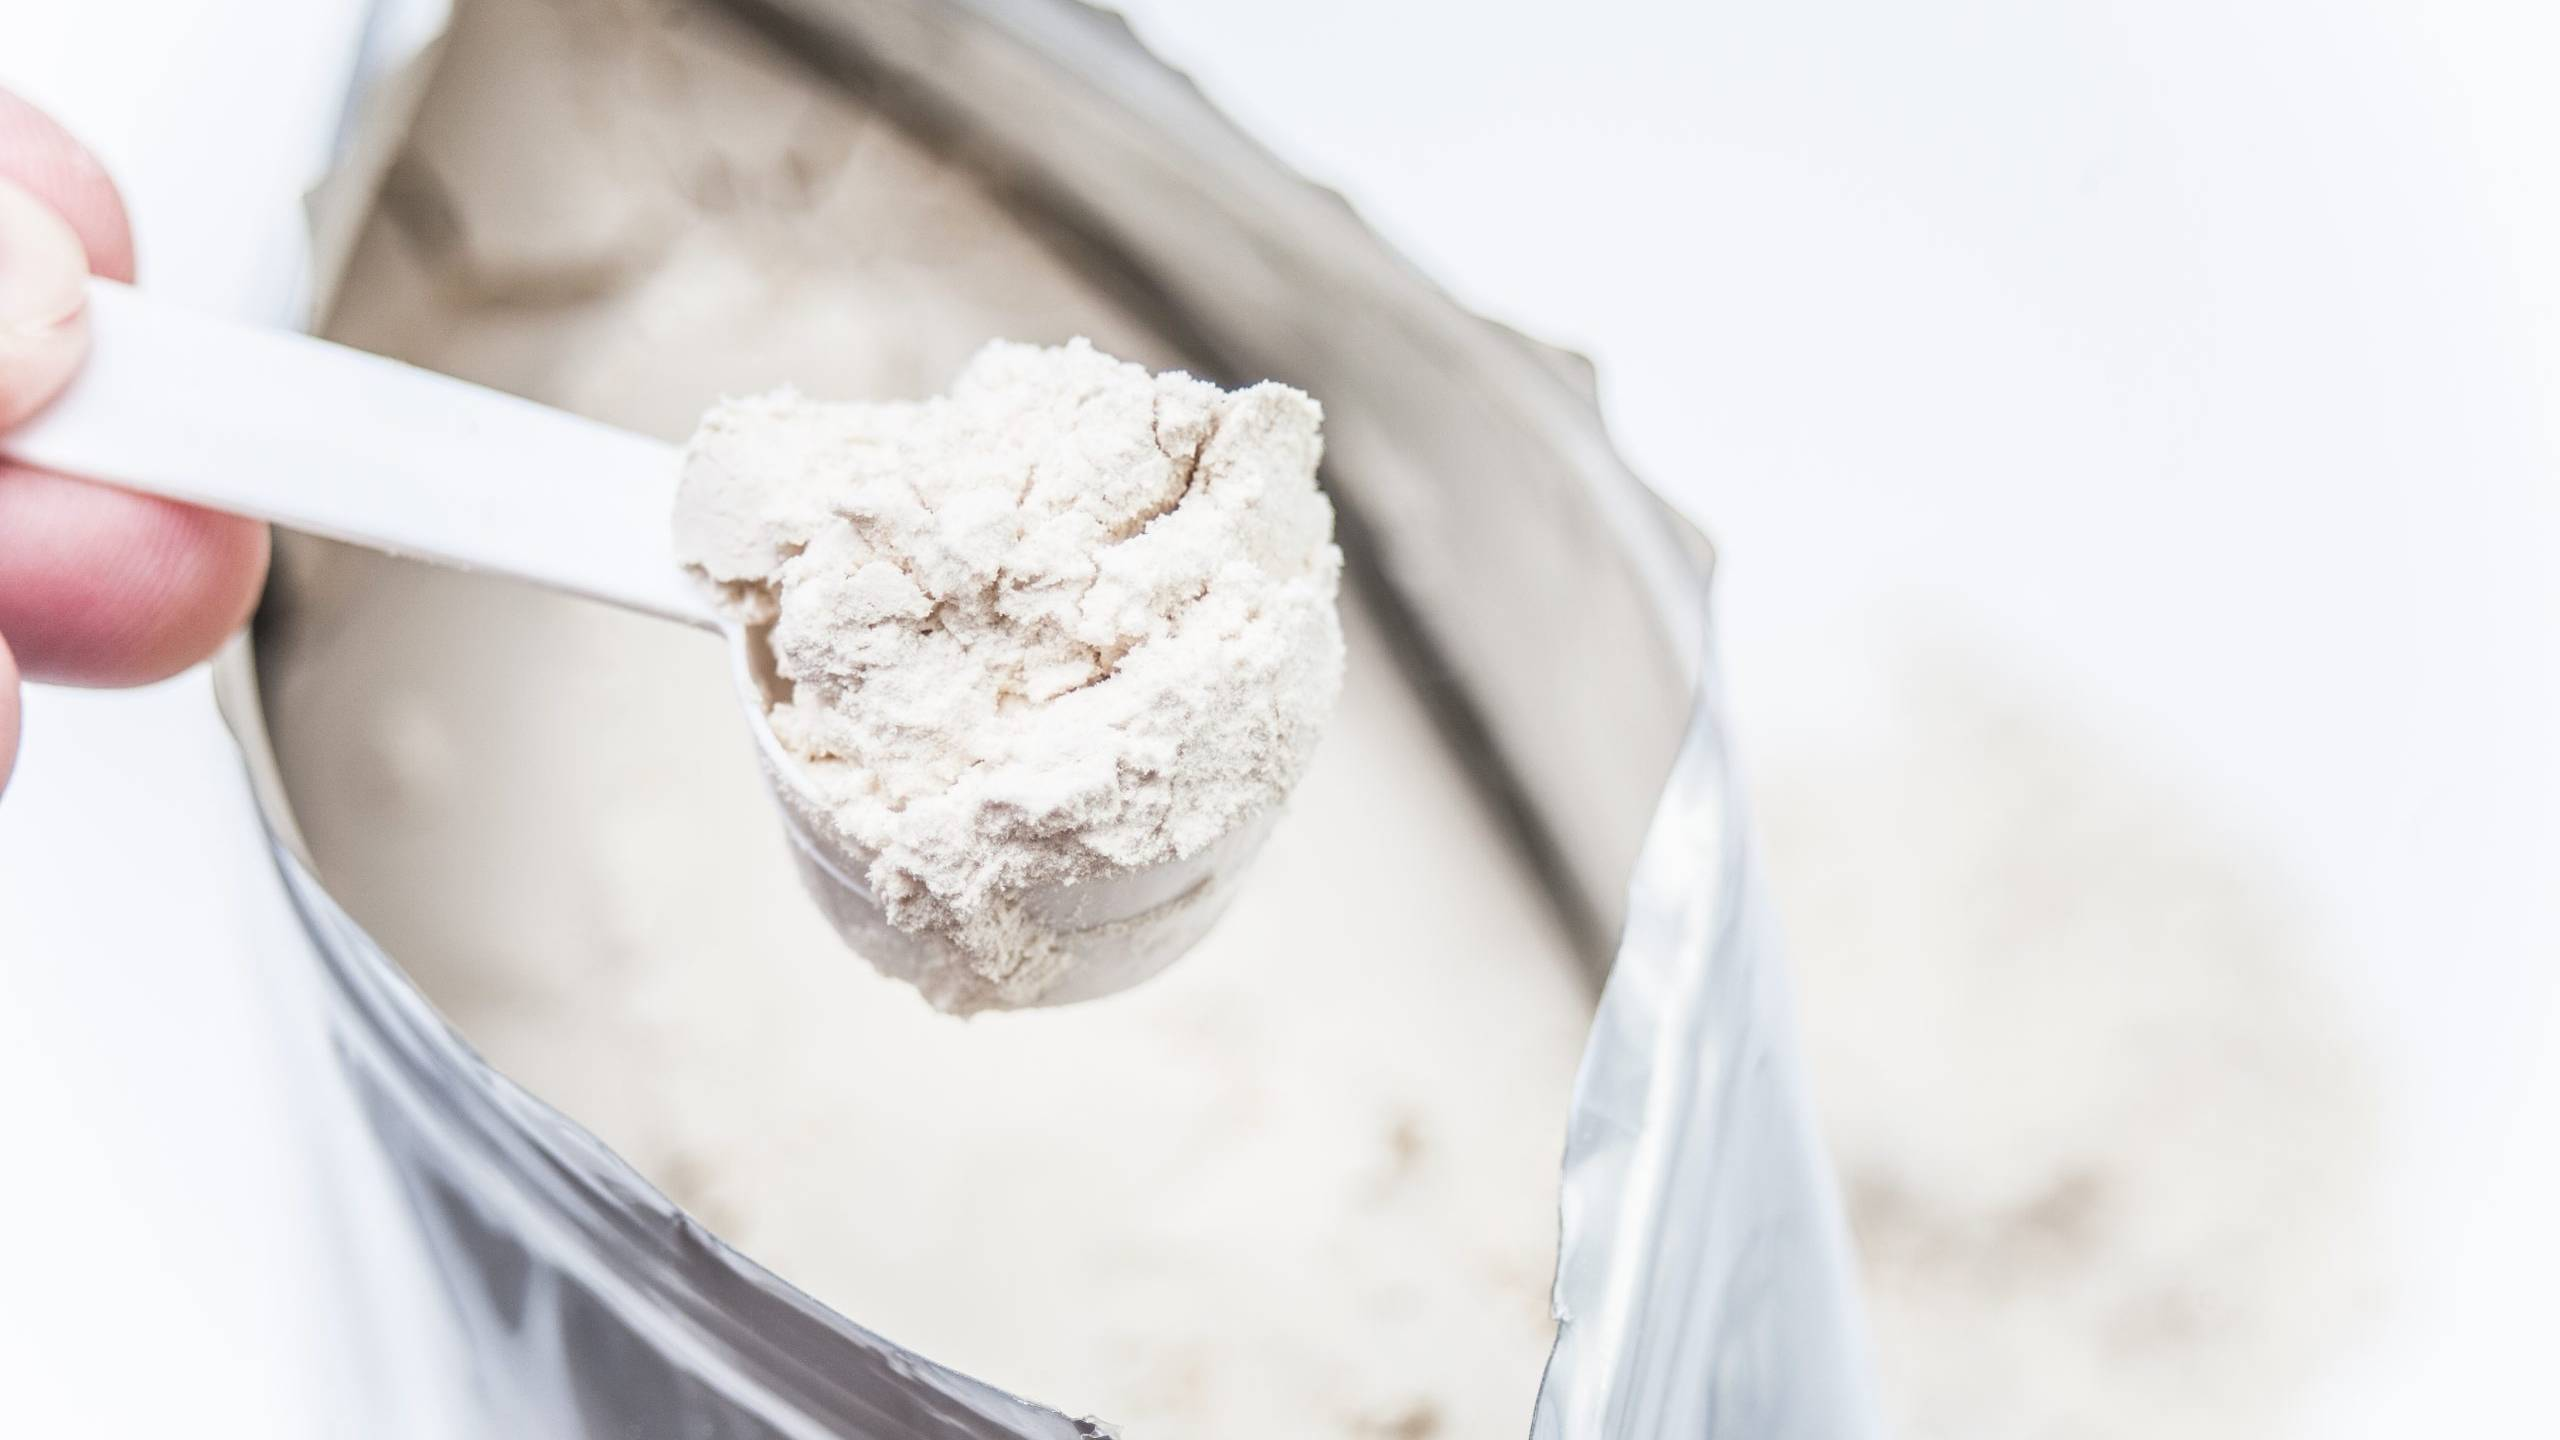 A scoop of white protein powder on a white background